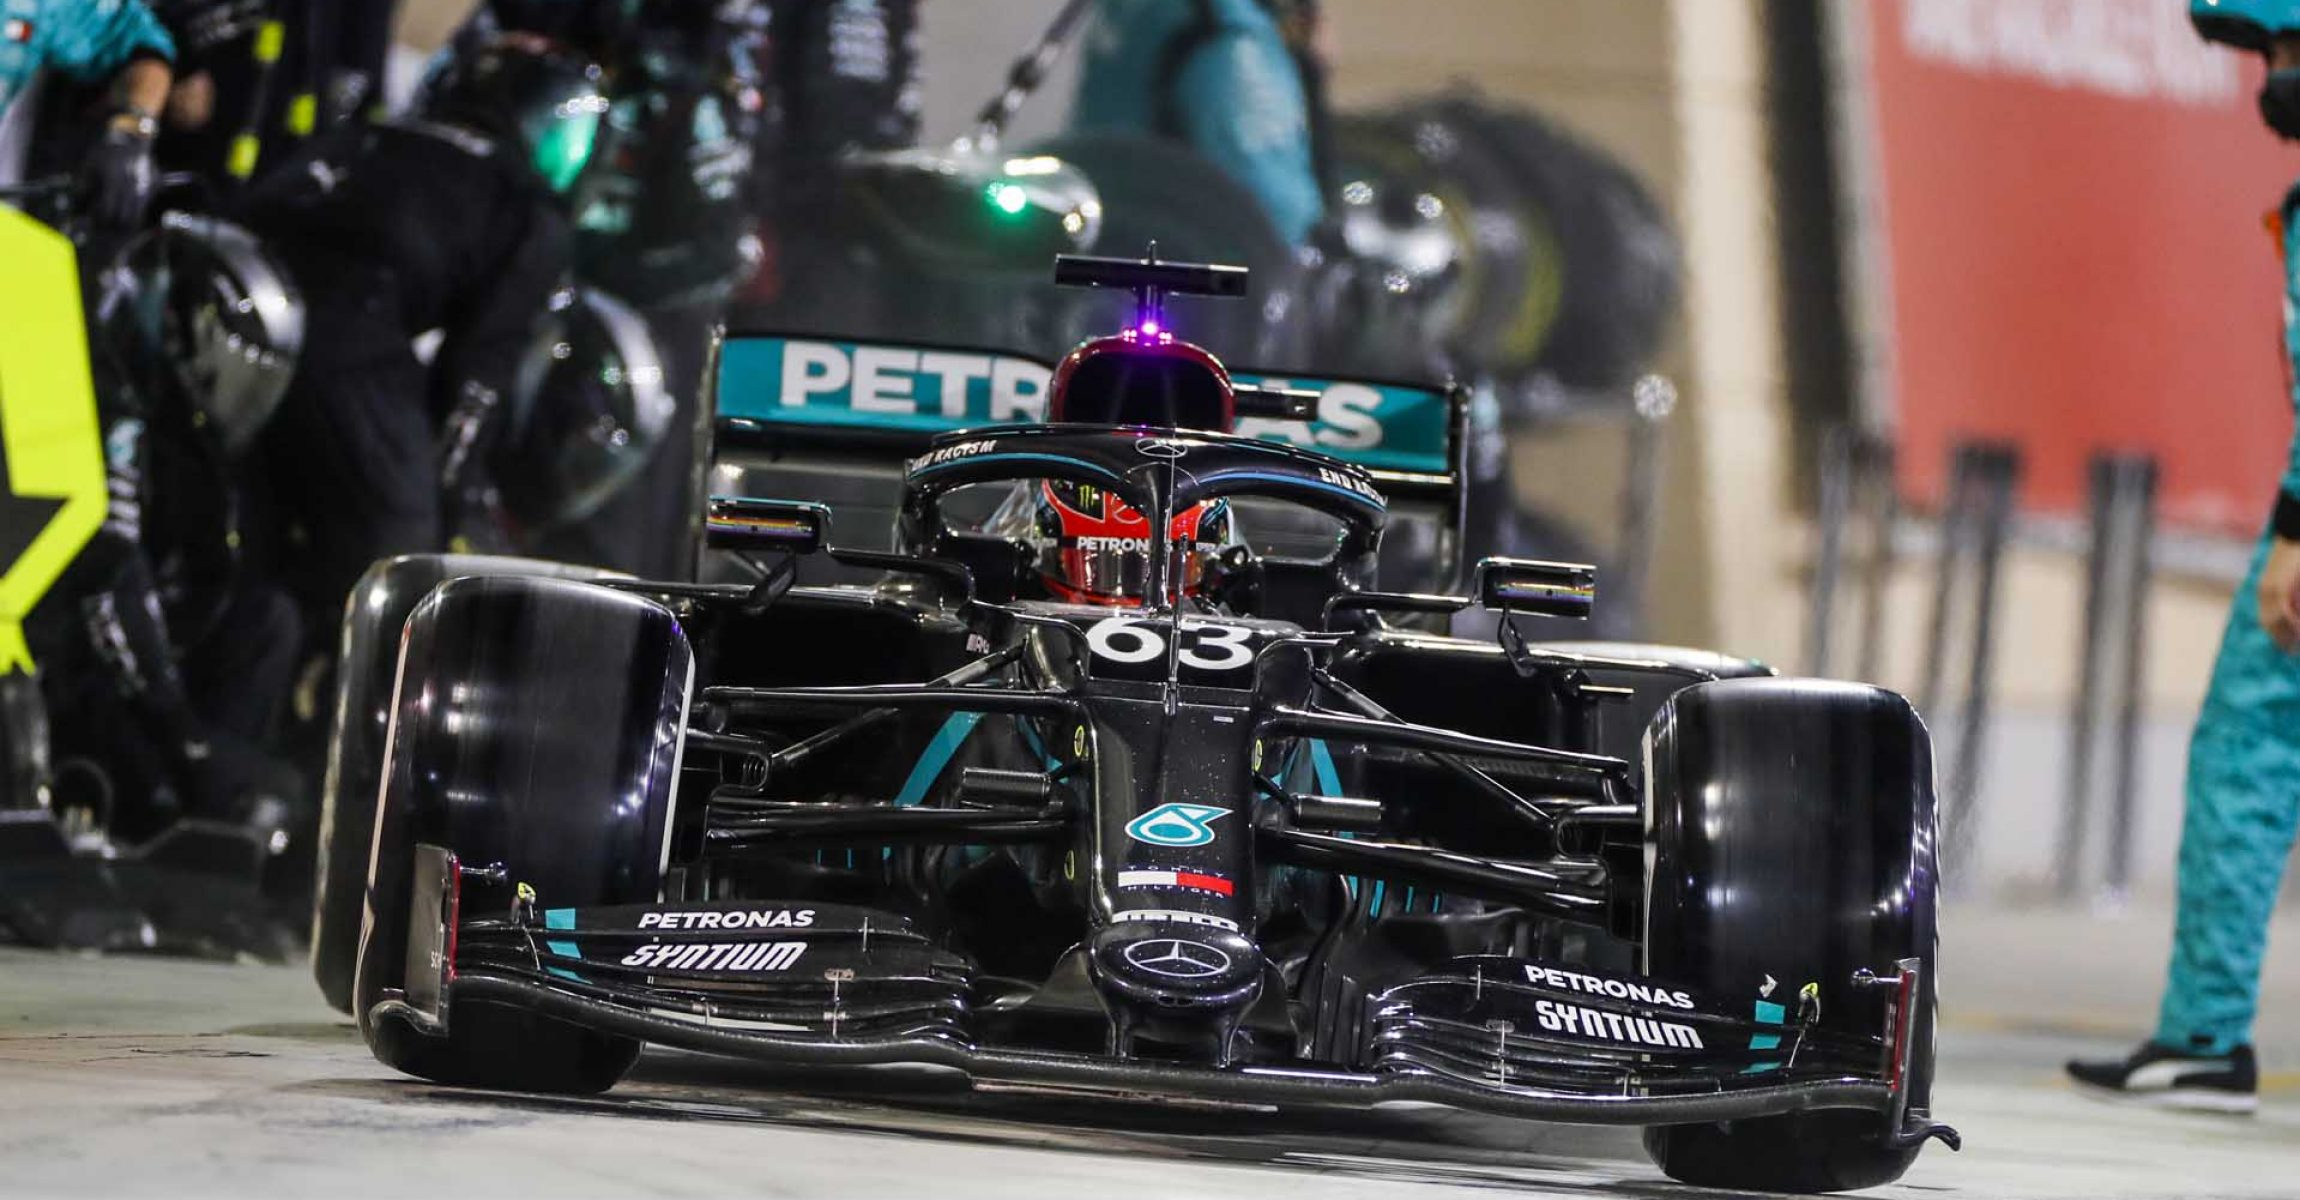 2020 Sakhir Grand Prix, Sunday – LAT Images George Russell Mercedes pitstop